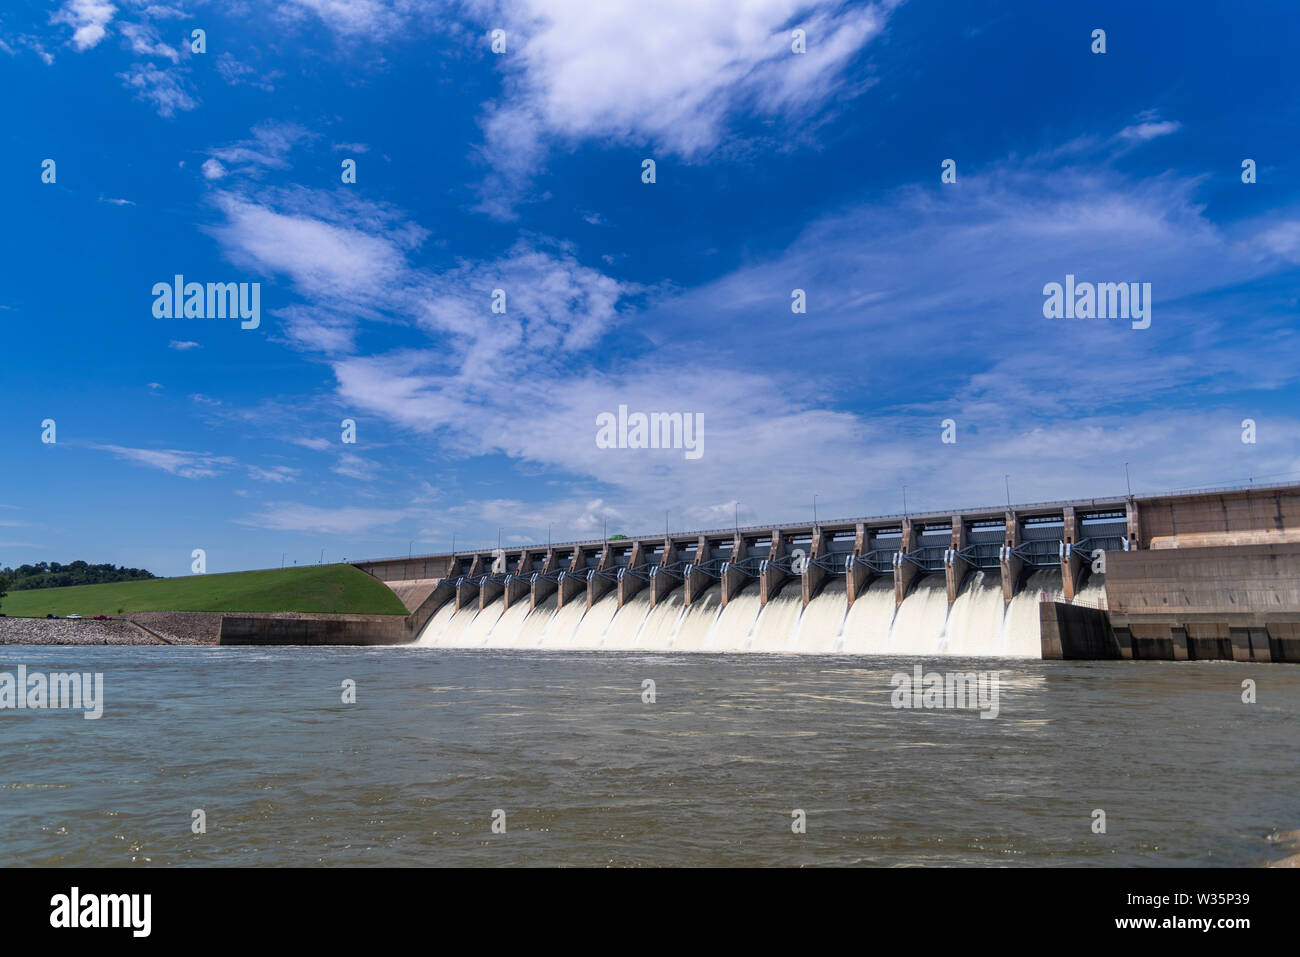 Water flowing through the open gates of a hydro electric power station Stock Photo